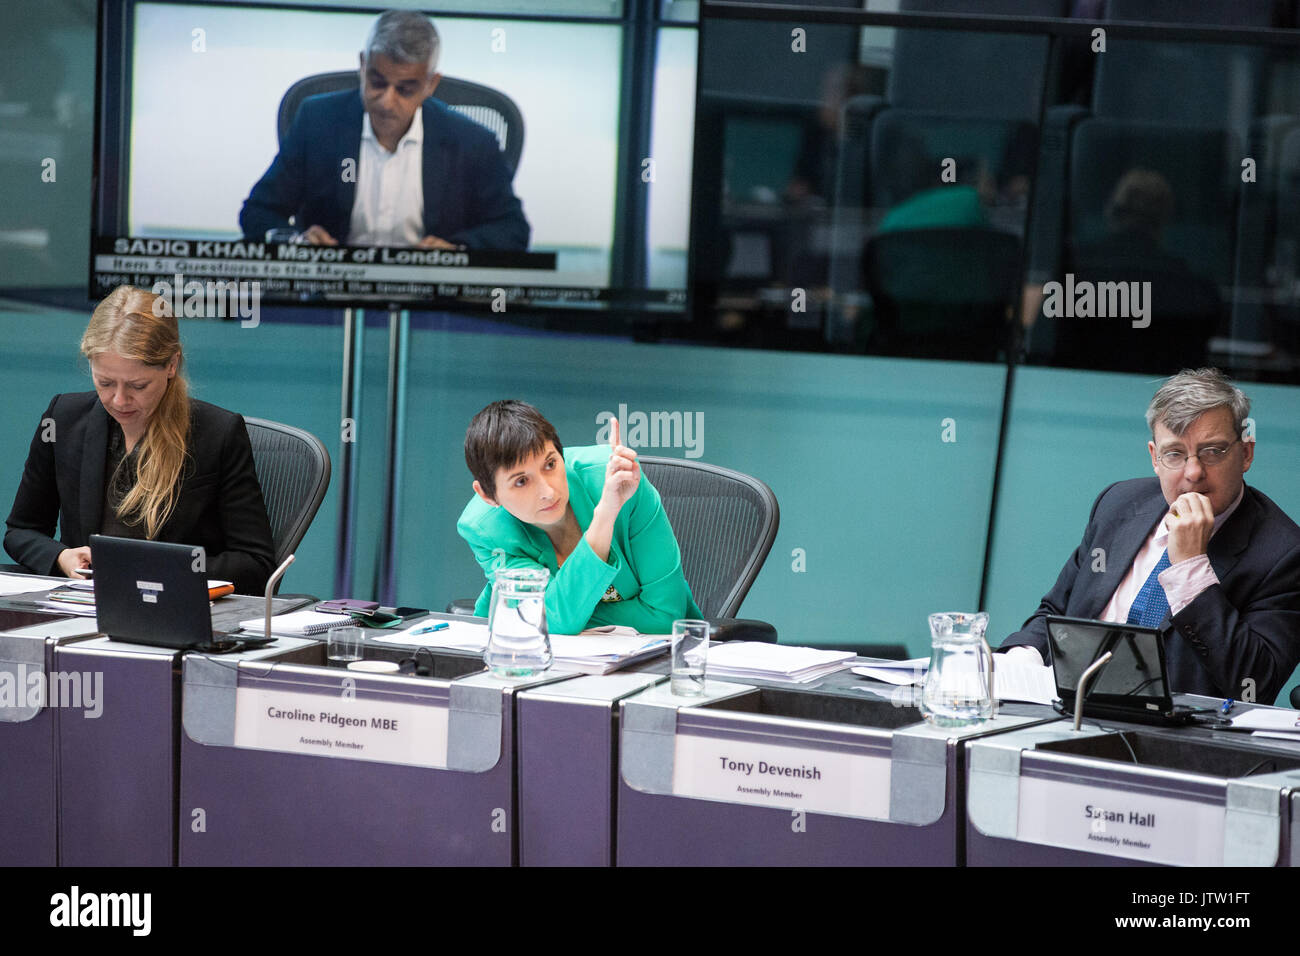 London, UK. 10th August, 2017. London Assembly Member Caroline Pidgeon MBE attracts the attention of the chair during Mayor's Question Time at City Hall. Among topics discussed were: acid attacks, social housing, expenditure on fire, 4G coverage on underground trains and police services and noise from overnight underground trains. Credit: Mark Kerrison/Alamy Live News - Stock Image